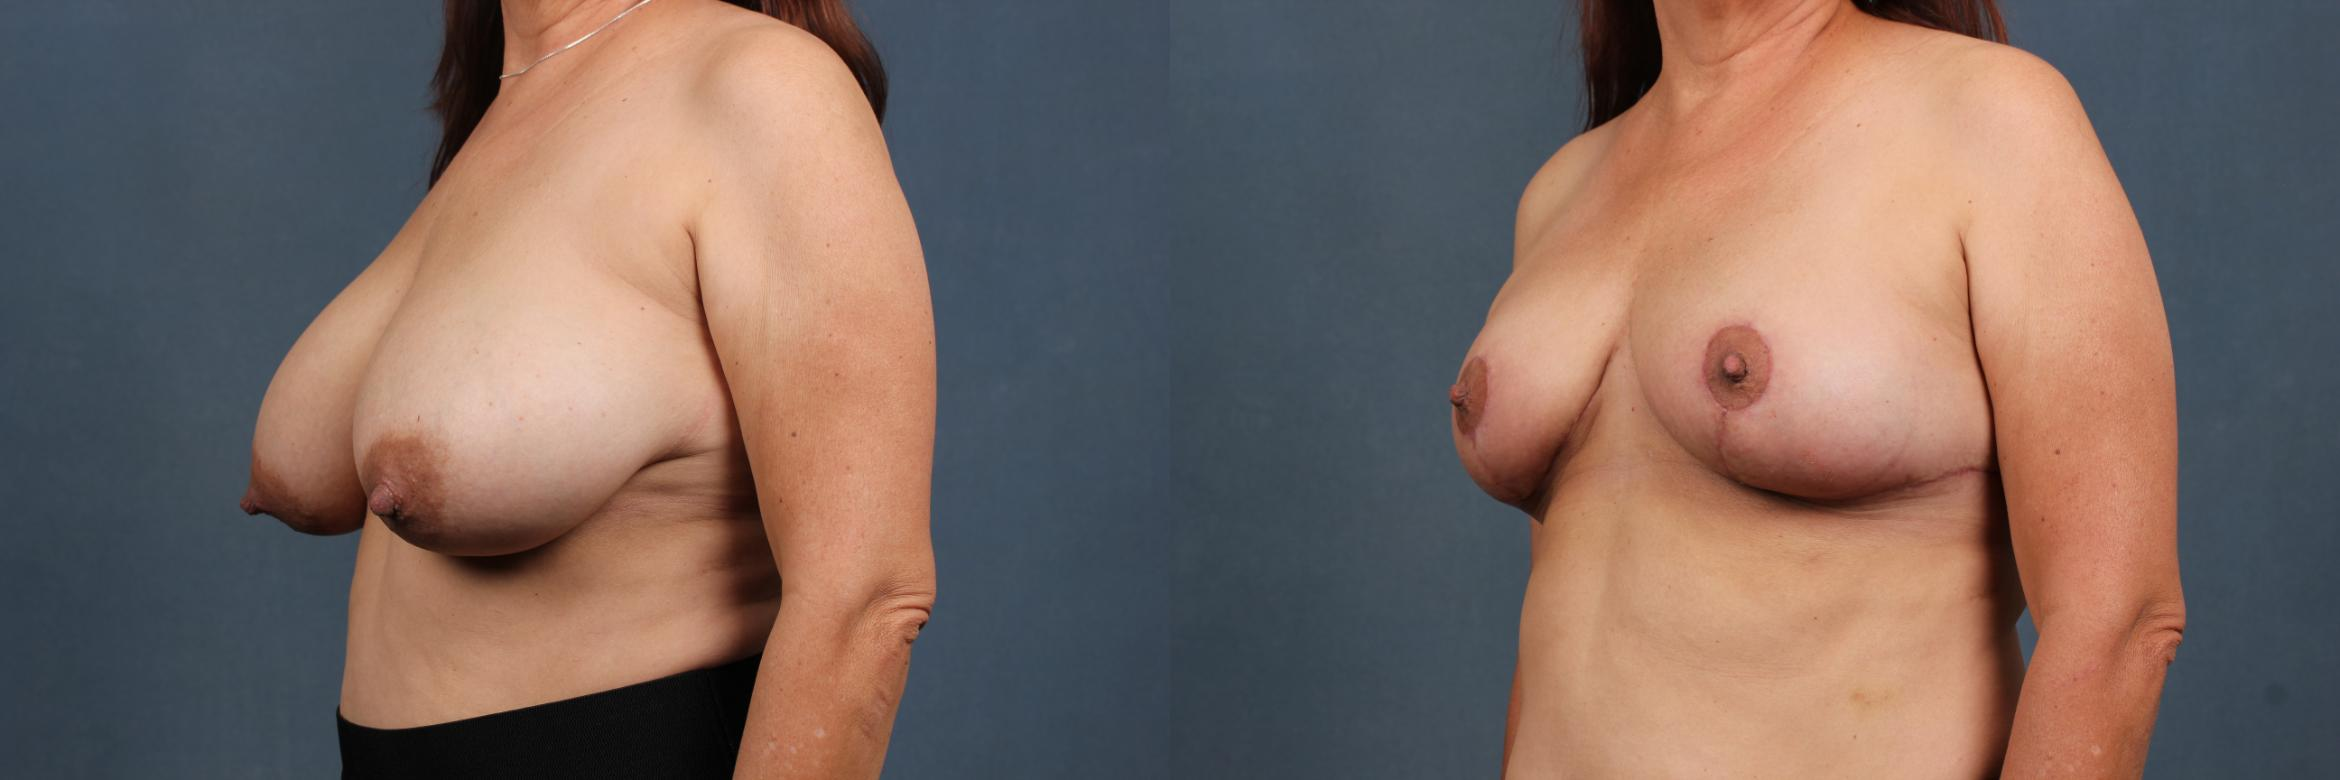 Reduction Case 447 Before & After View #2 | Louisville & Lexington, KY | CaloAesthetics® Plastic Surgery Center